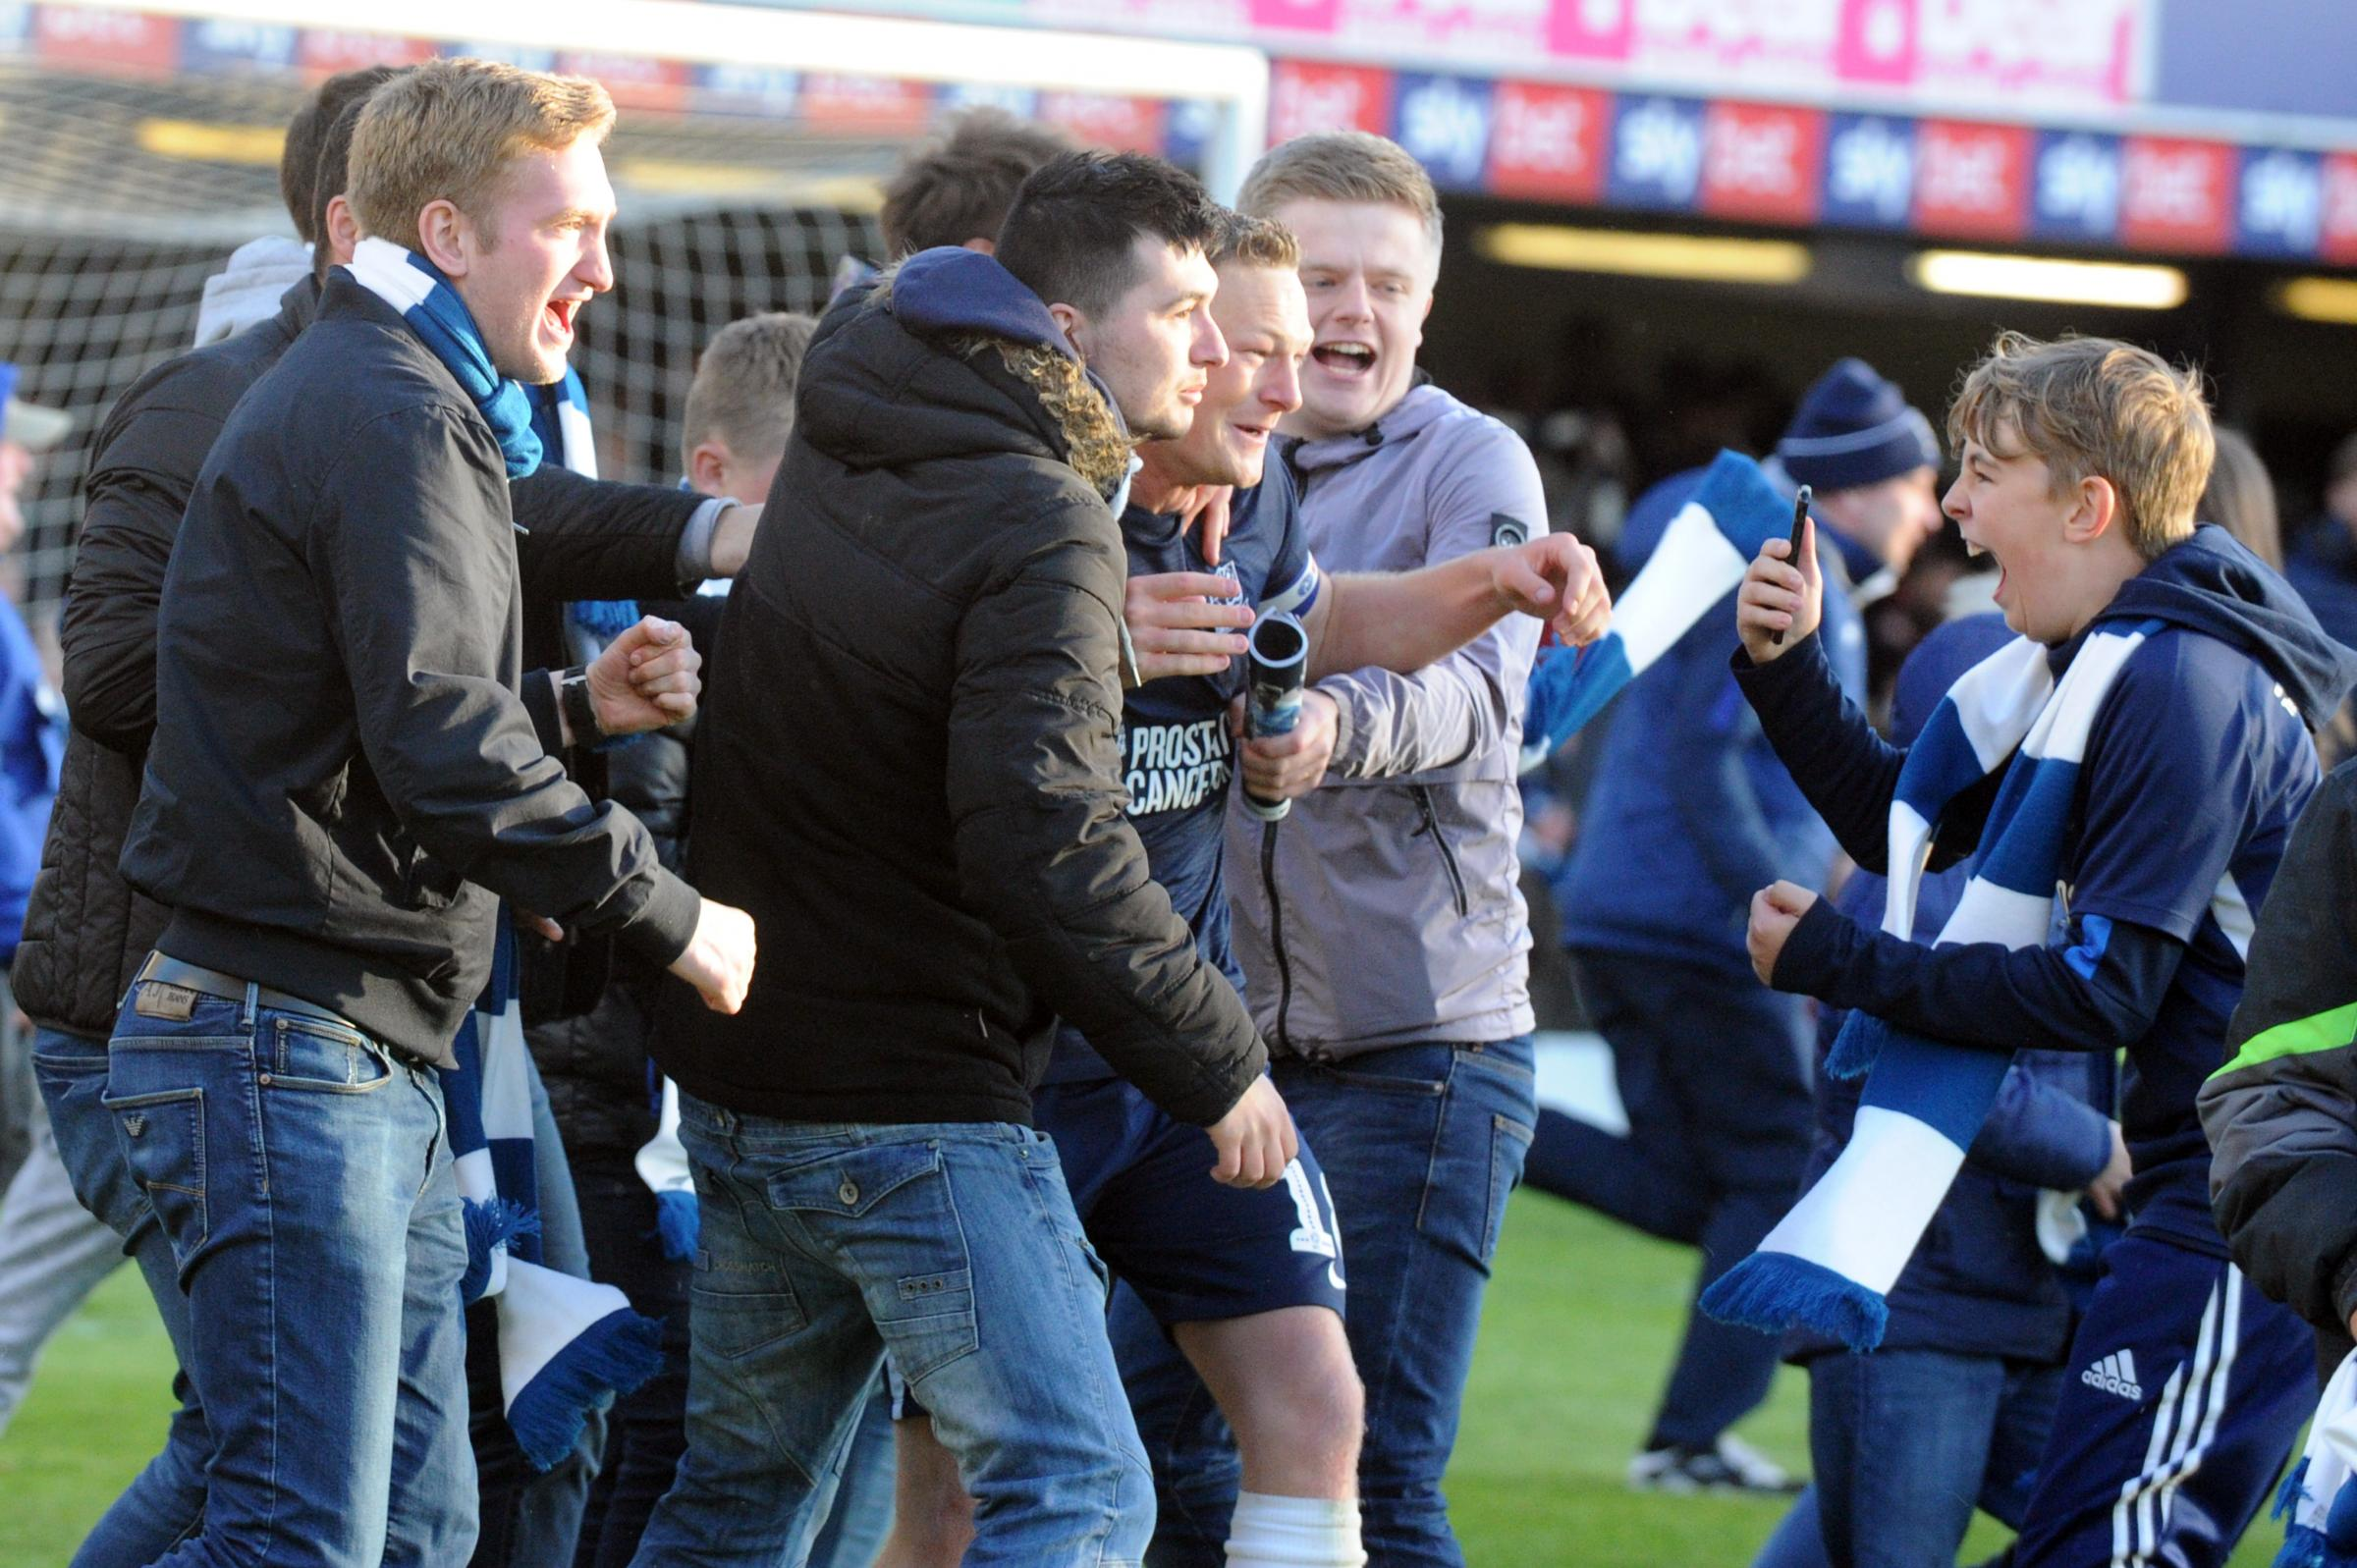 On the pitch - Southend United's fans celebrate on the pitch with skipper Sam Mantom